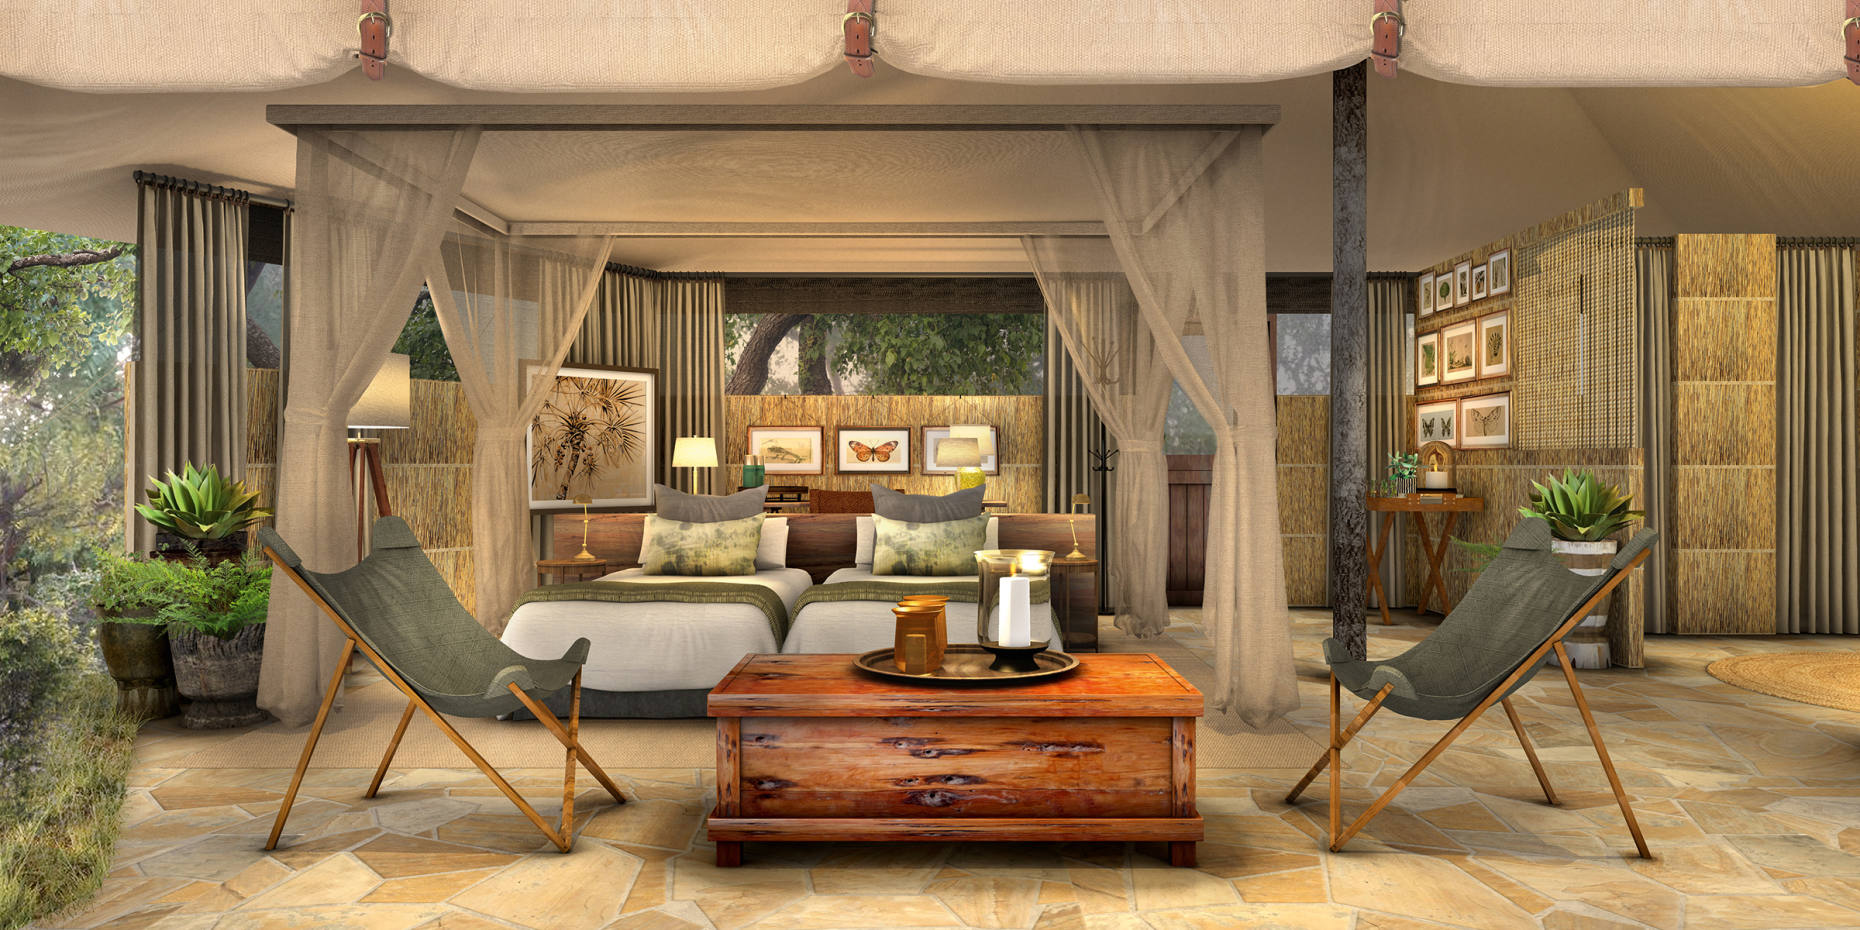 Asila Africa's Roho ya Selous is a sleek and stylish new camp in the heart of Tanzania's Selous Game Reserve